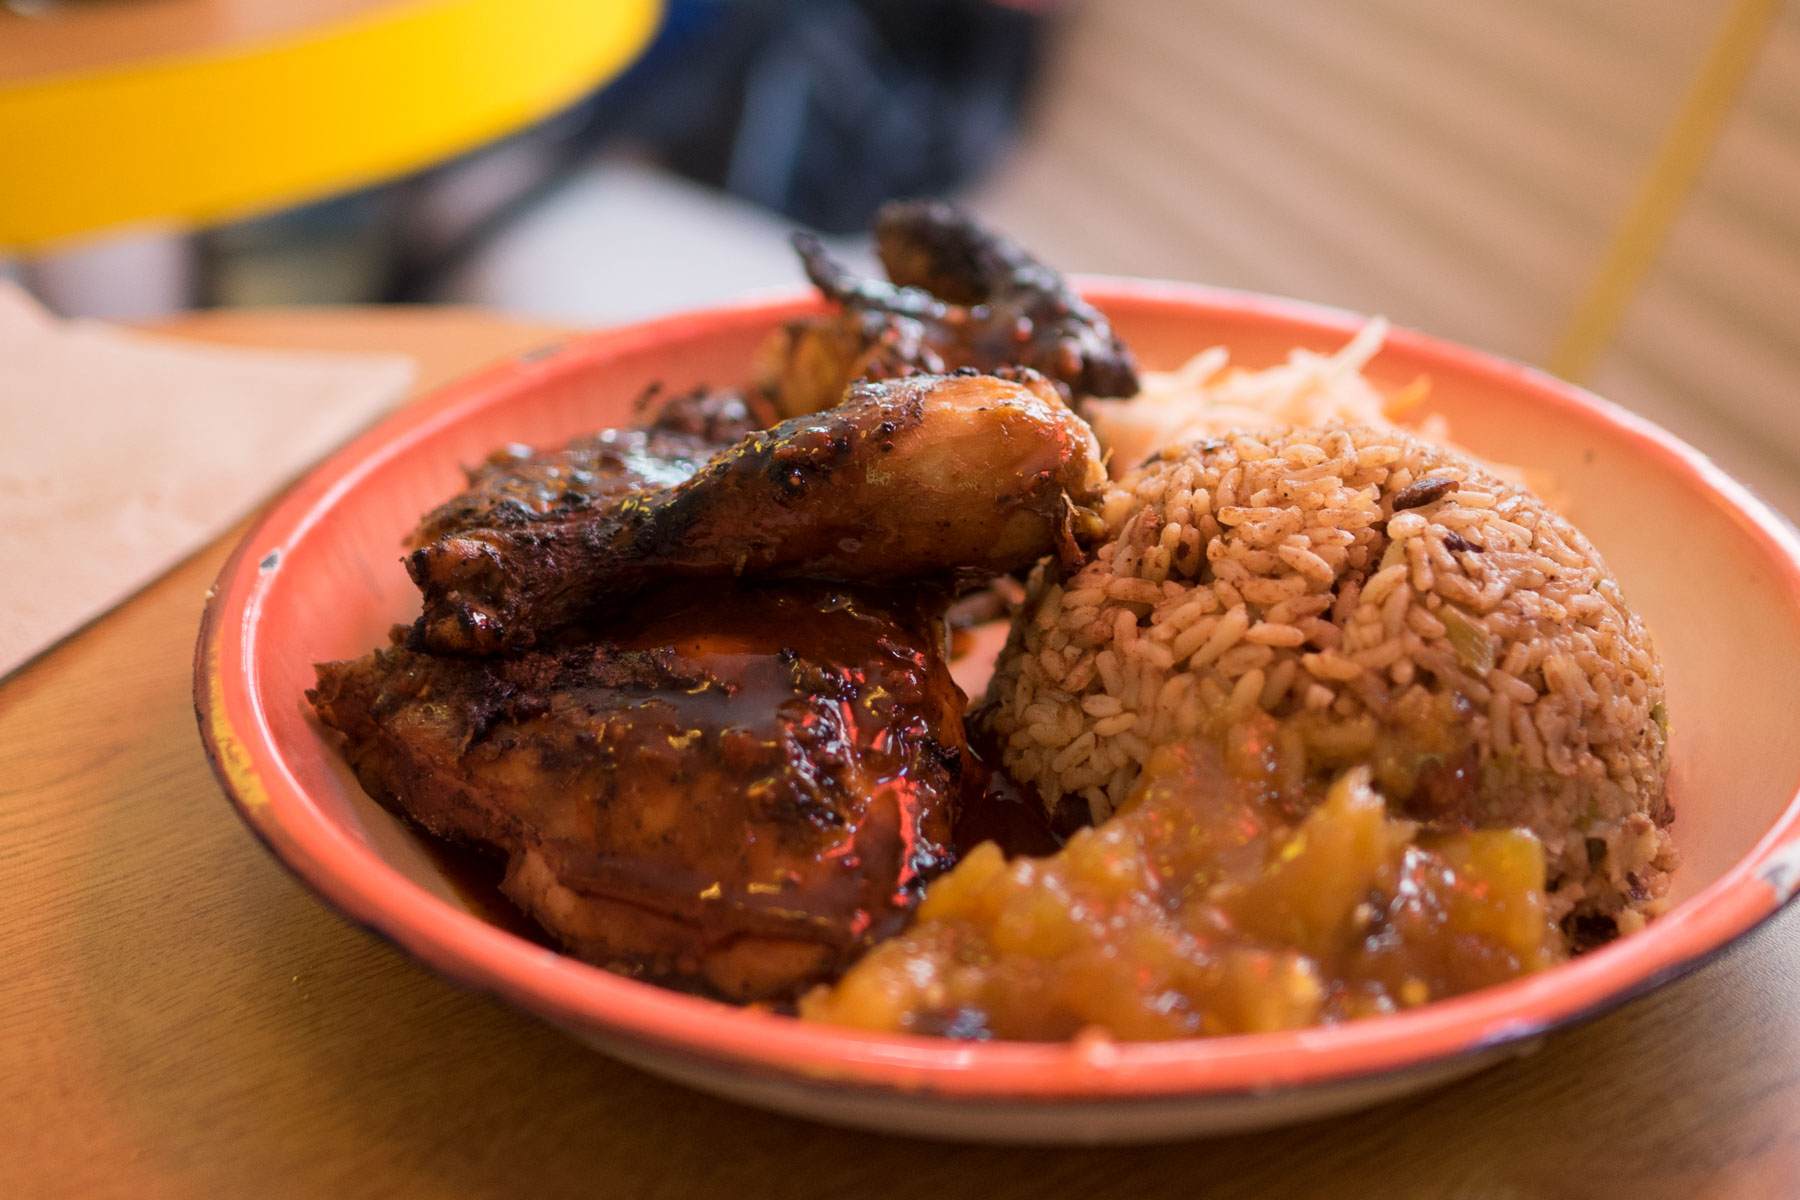 miss-lilys-restaurant-jamaican-caribbean-diner-nyc-les-new-york-city-5